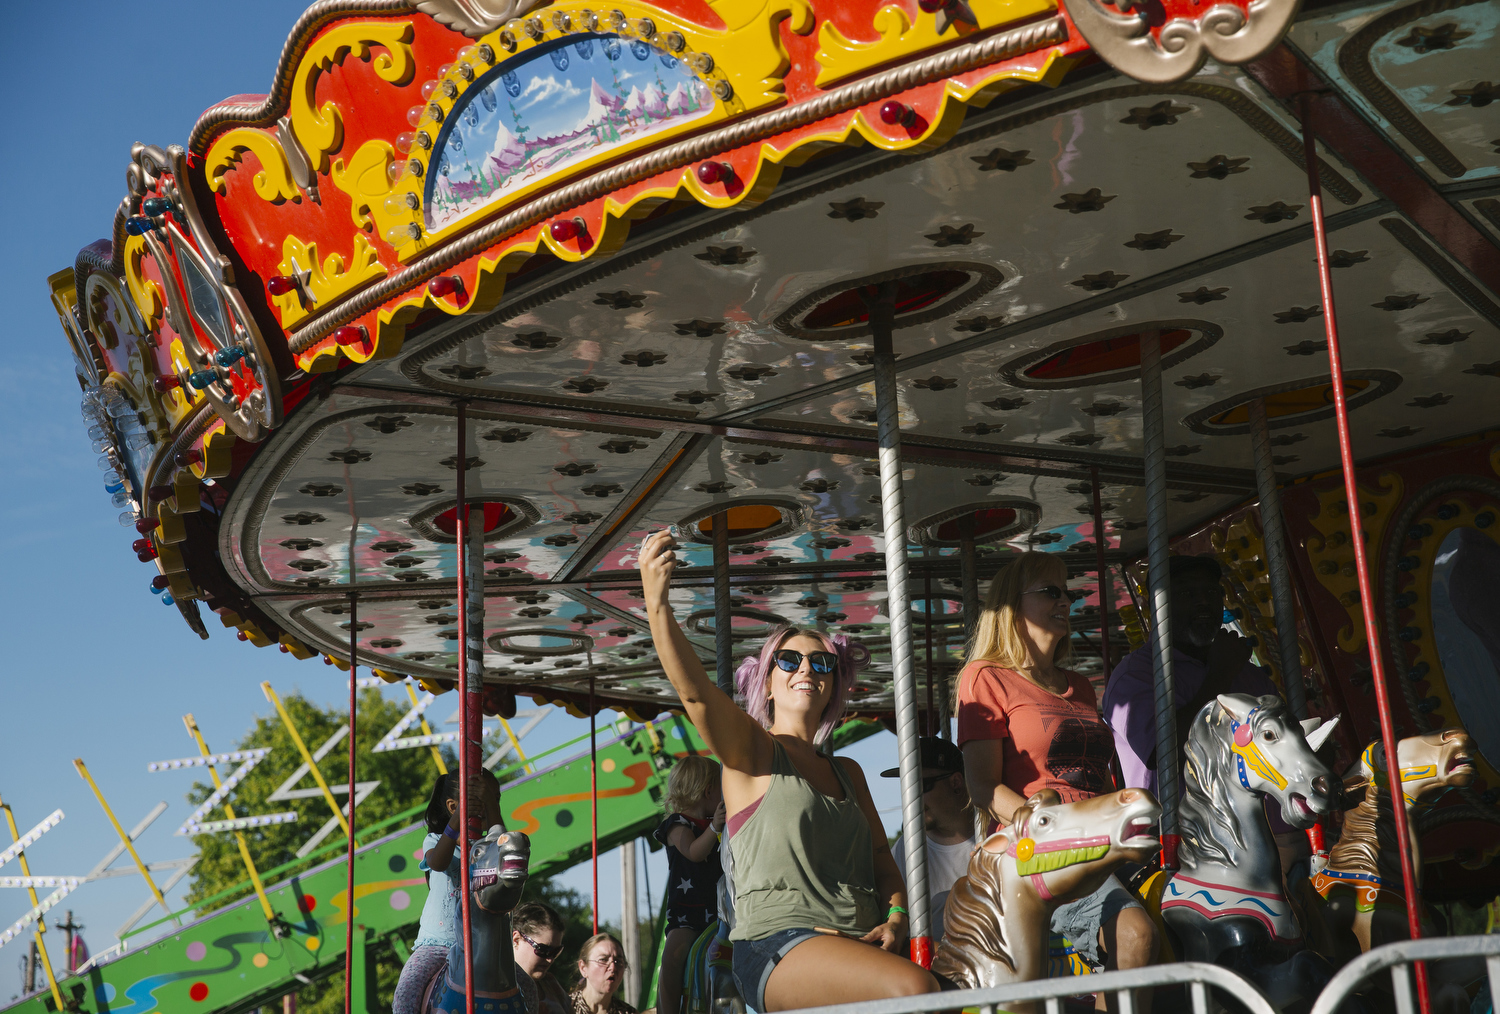 Fairgoers ride the carousel at the Ozark Empire Fair in Springfield, Mo. on July 29, 2017. Photo by Brad Zweerink.